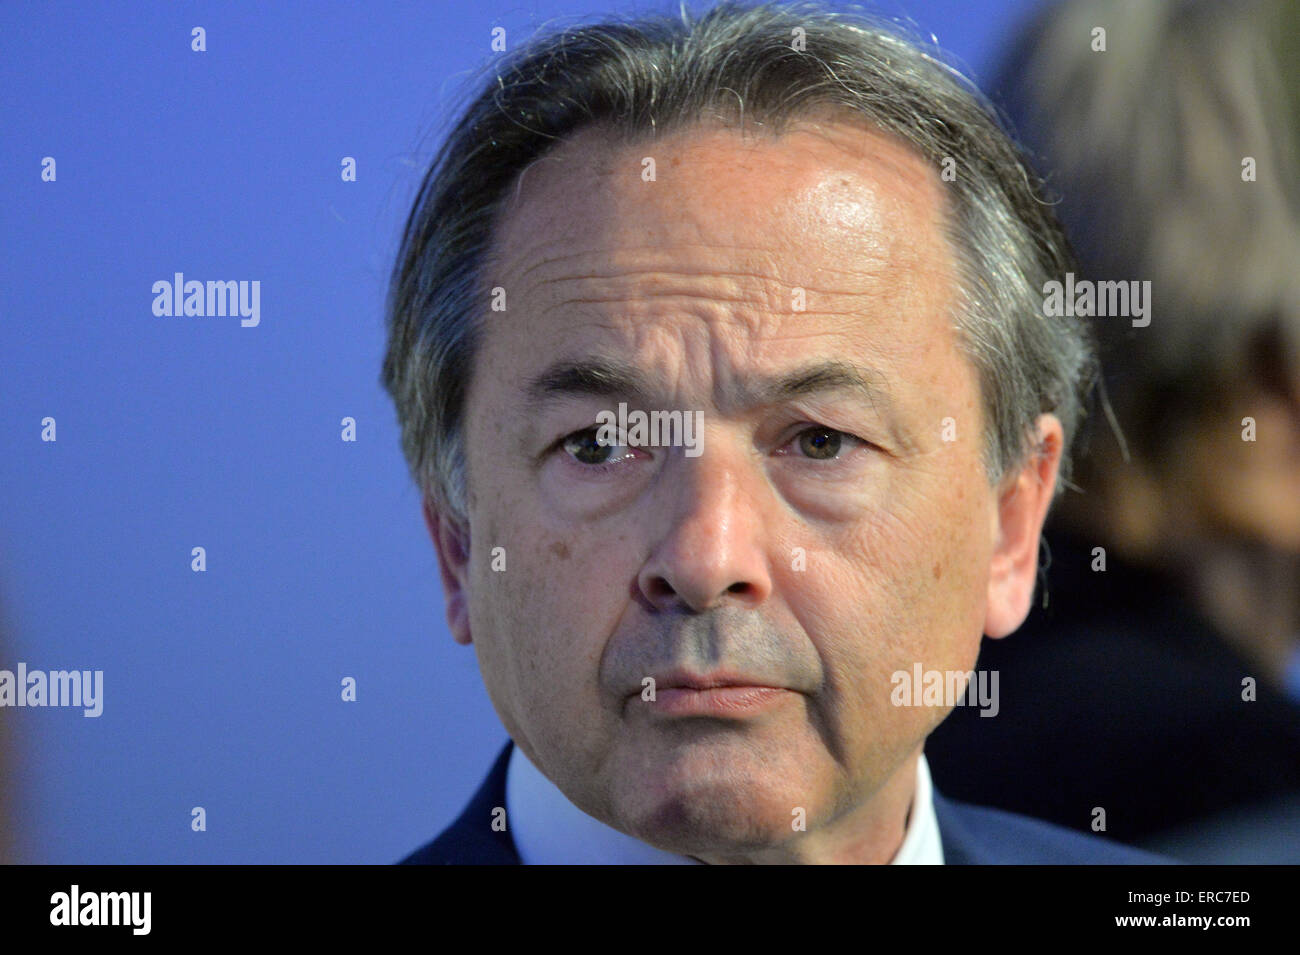 Prague, Czech Republic. 30th May, 2015. French political scientist Gilles Kepel pictured during his interview with - Stock Image